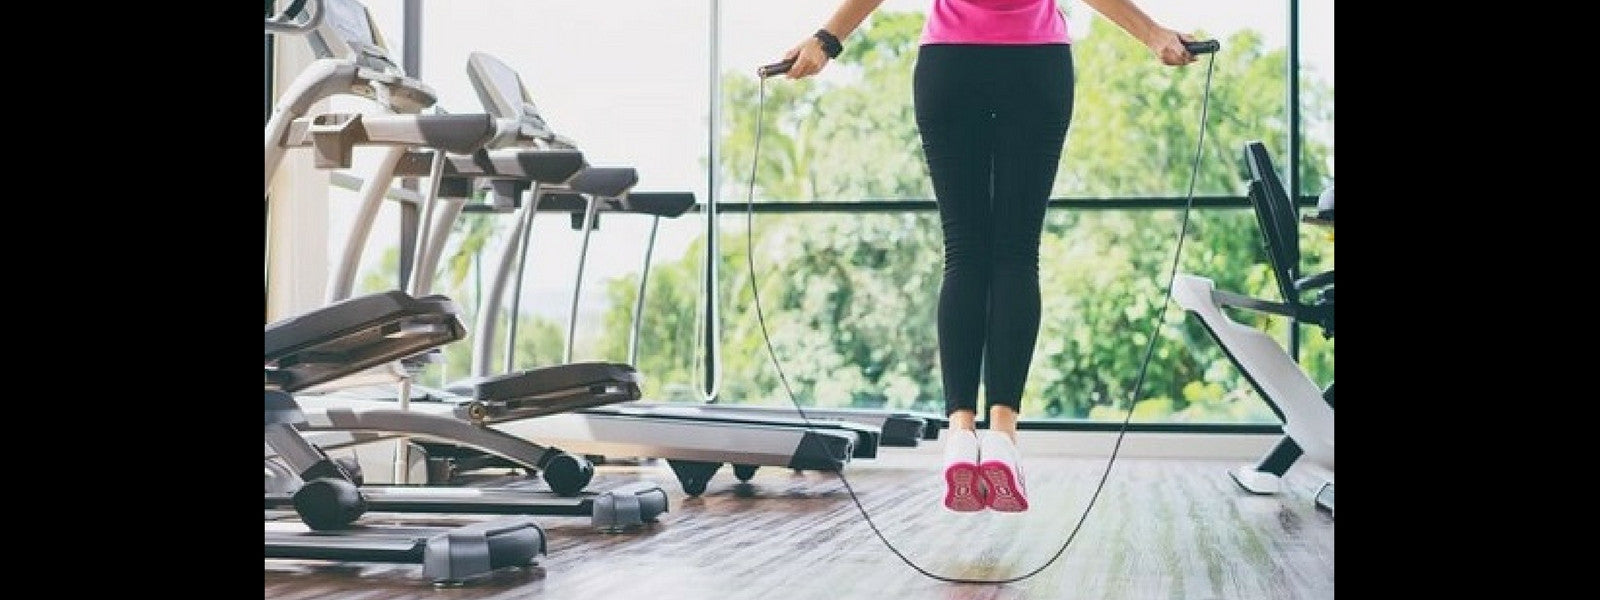 5 BENEFITS OF JUMPING ROPE YOU DIDN'T THINK ABOUT